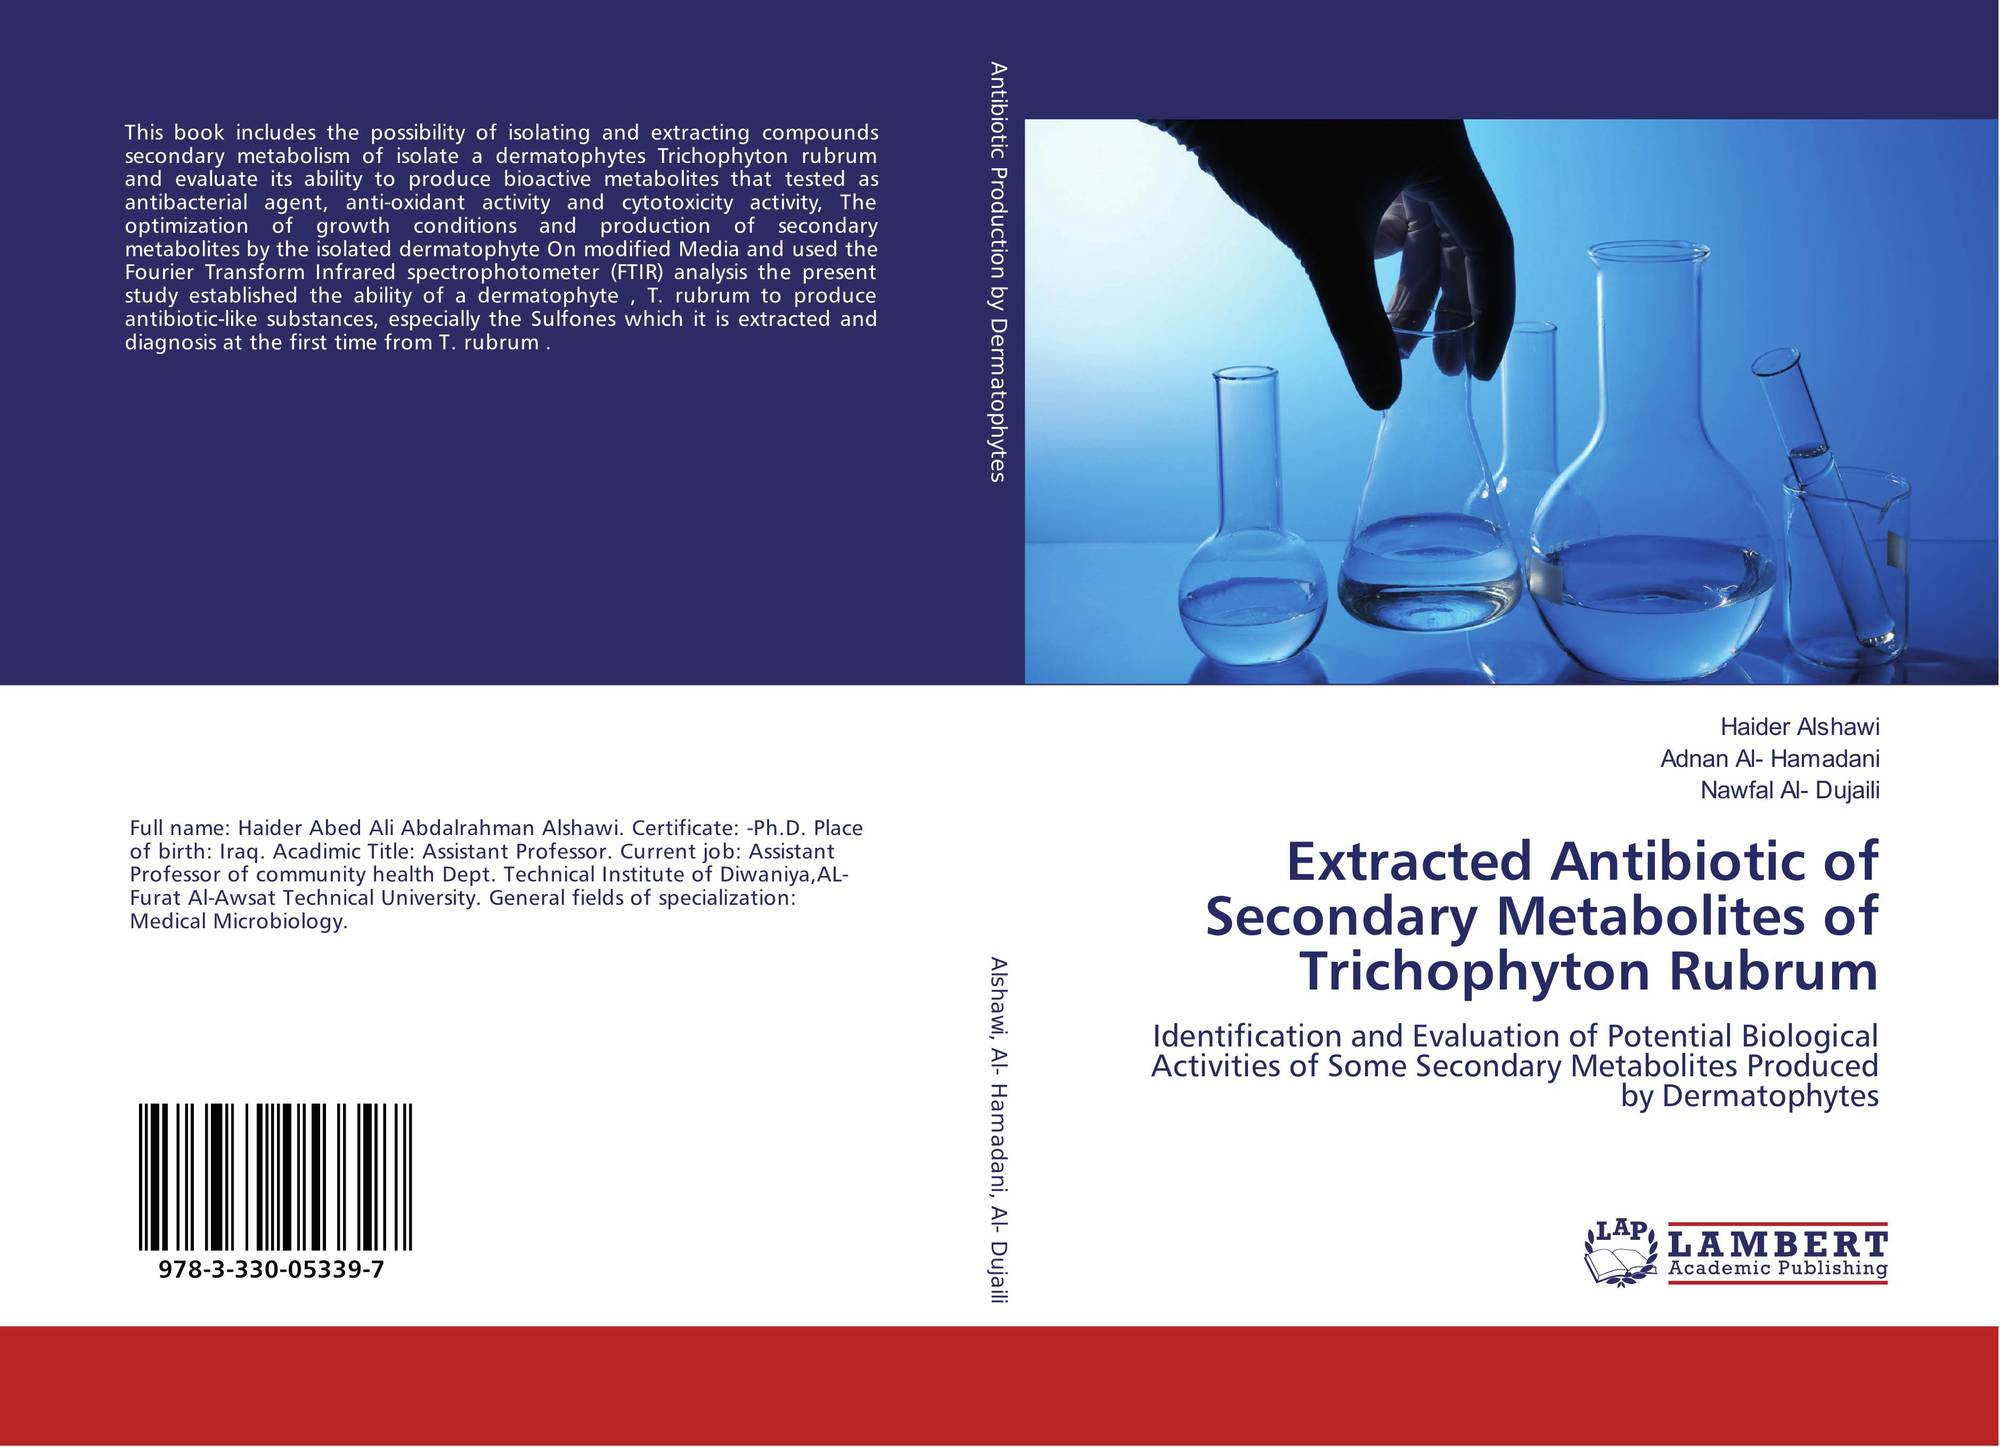 a study on the process of extraction of an antibiotic In this work, the application of ultrafiltration to improve solvent extraction of benzylpencillin, erythromycin and madmycin was studied the extraction process was greatly improved and the product recovery and quality were both increased.